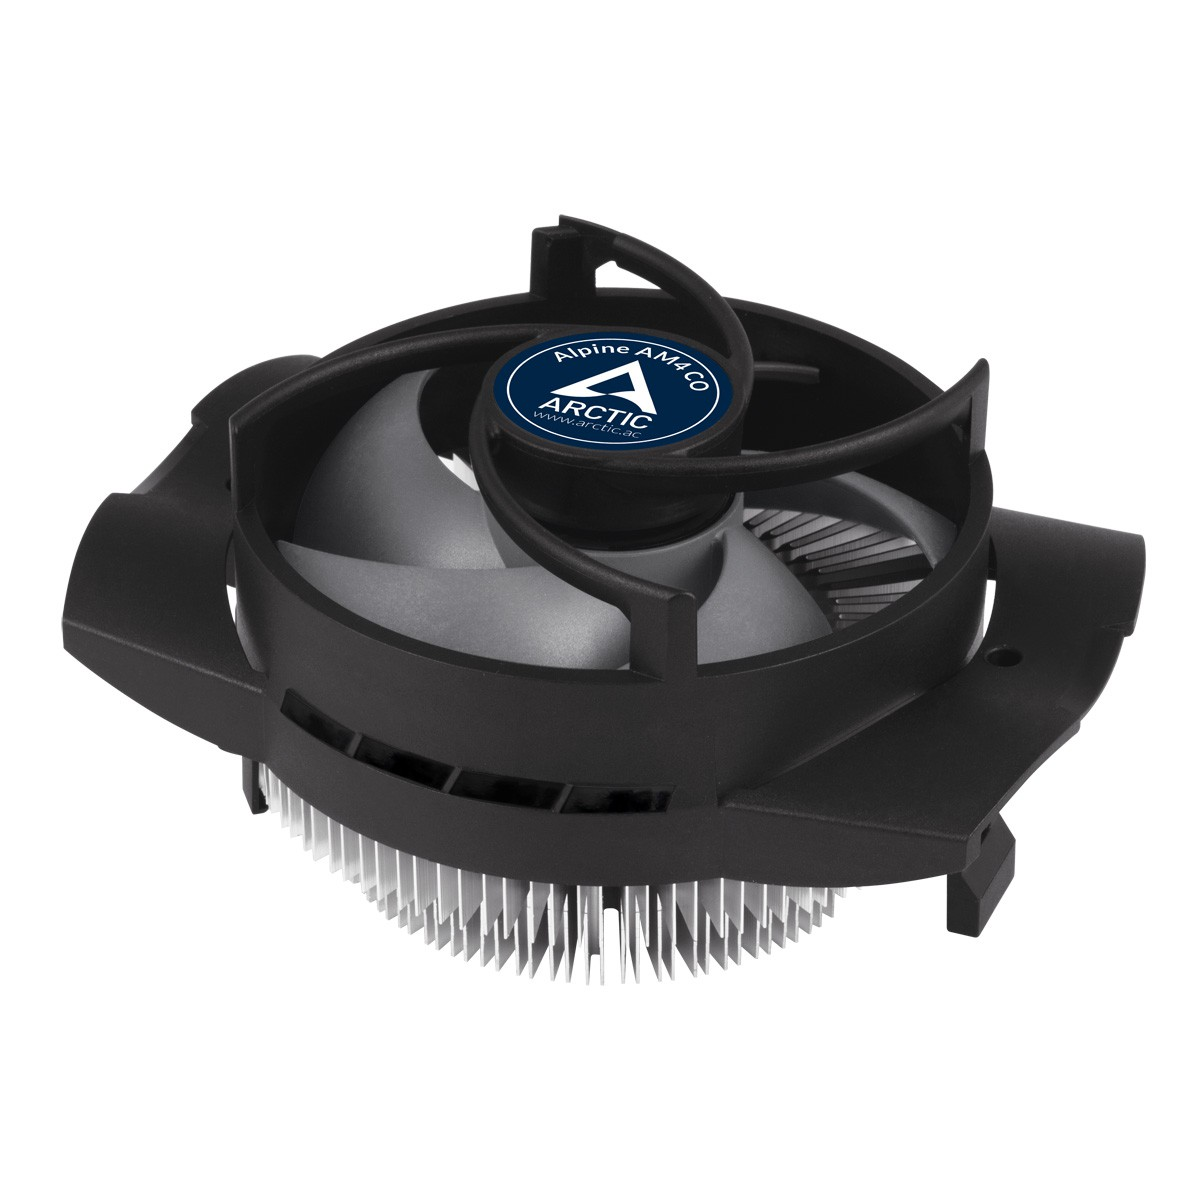 Вентилятор Arctic Cooling Alpine AM4 CO (ACALP00032A) (SocAM4/AM3/AM3+/AM2/AM2+/AM1/FM2/FM2+/FM1, 100-2700RPM, 25dBa, 95W, 4-pin)